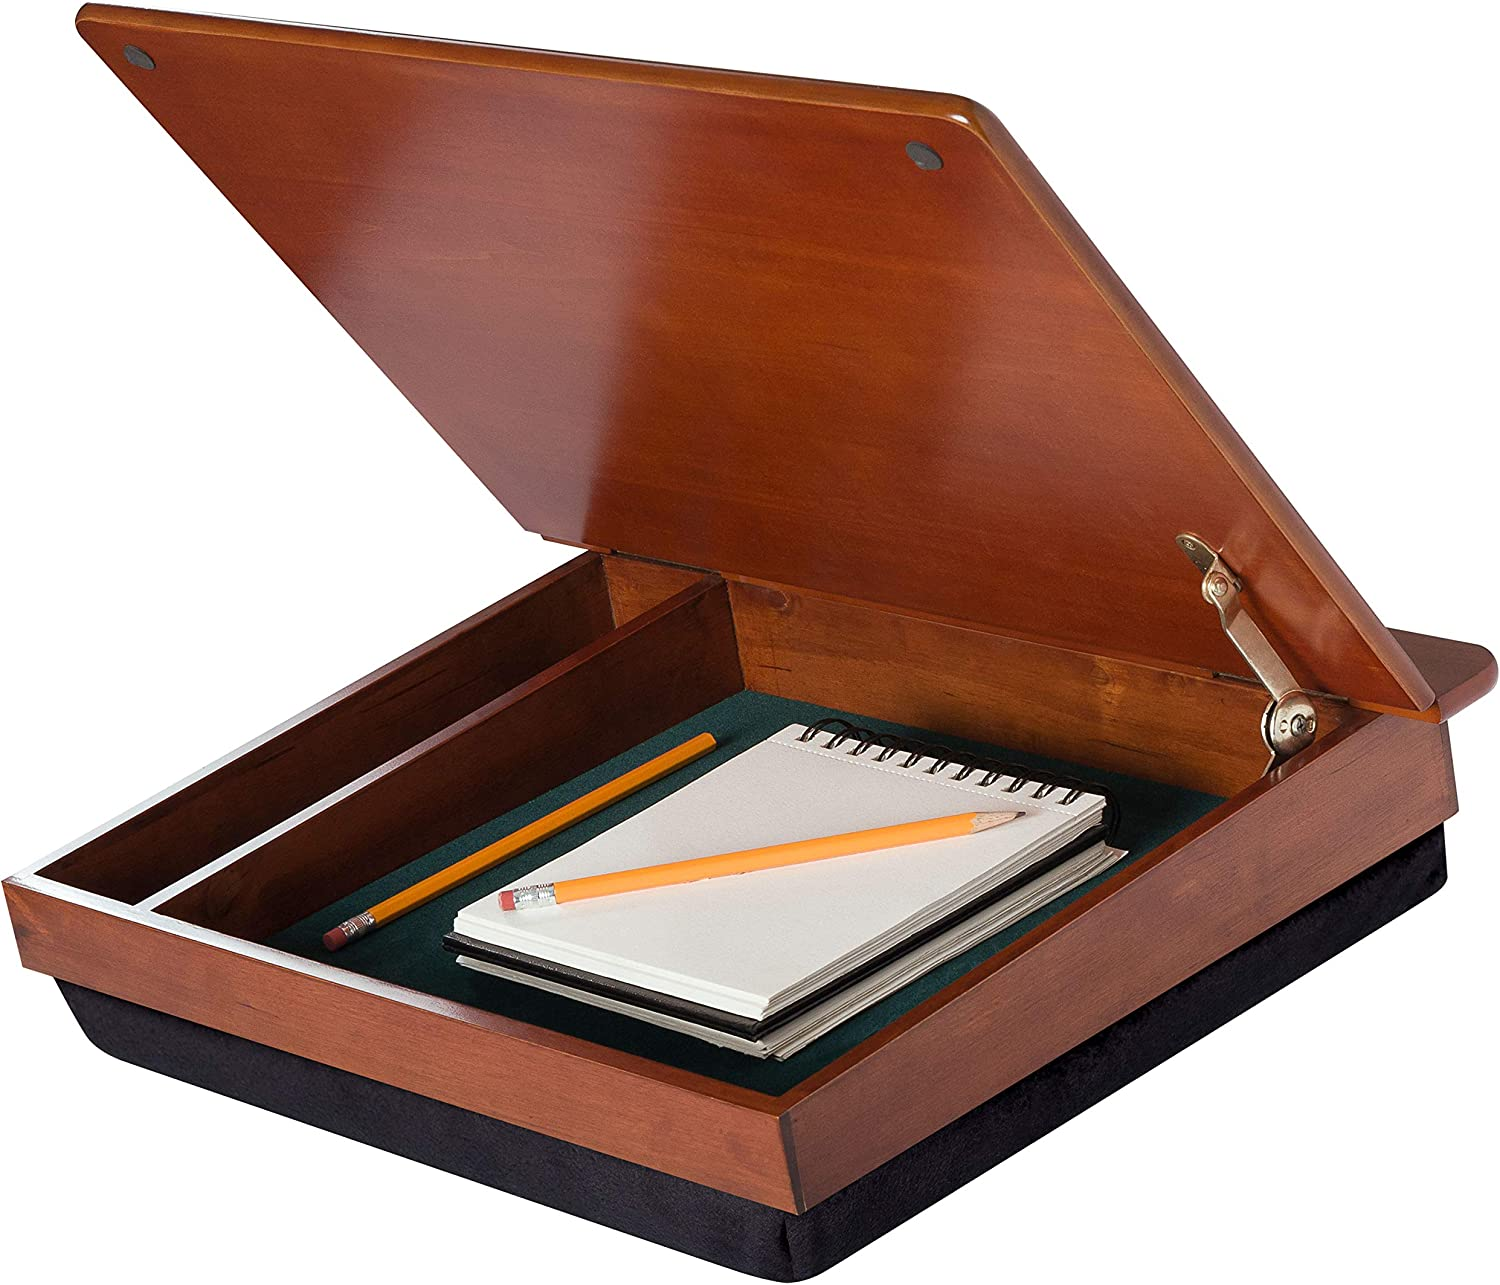 LapDesk Schoolhouse Wood LapDesk with storage (45075): Computers & Accessories